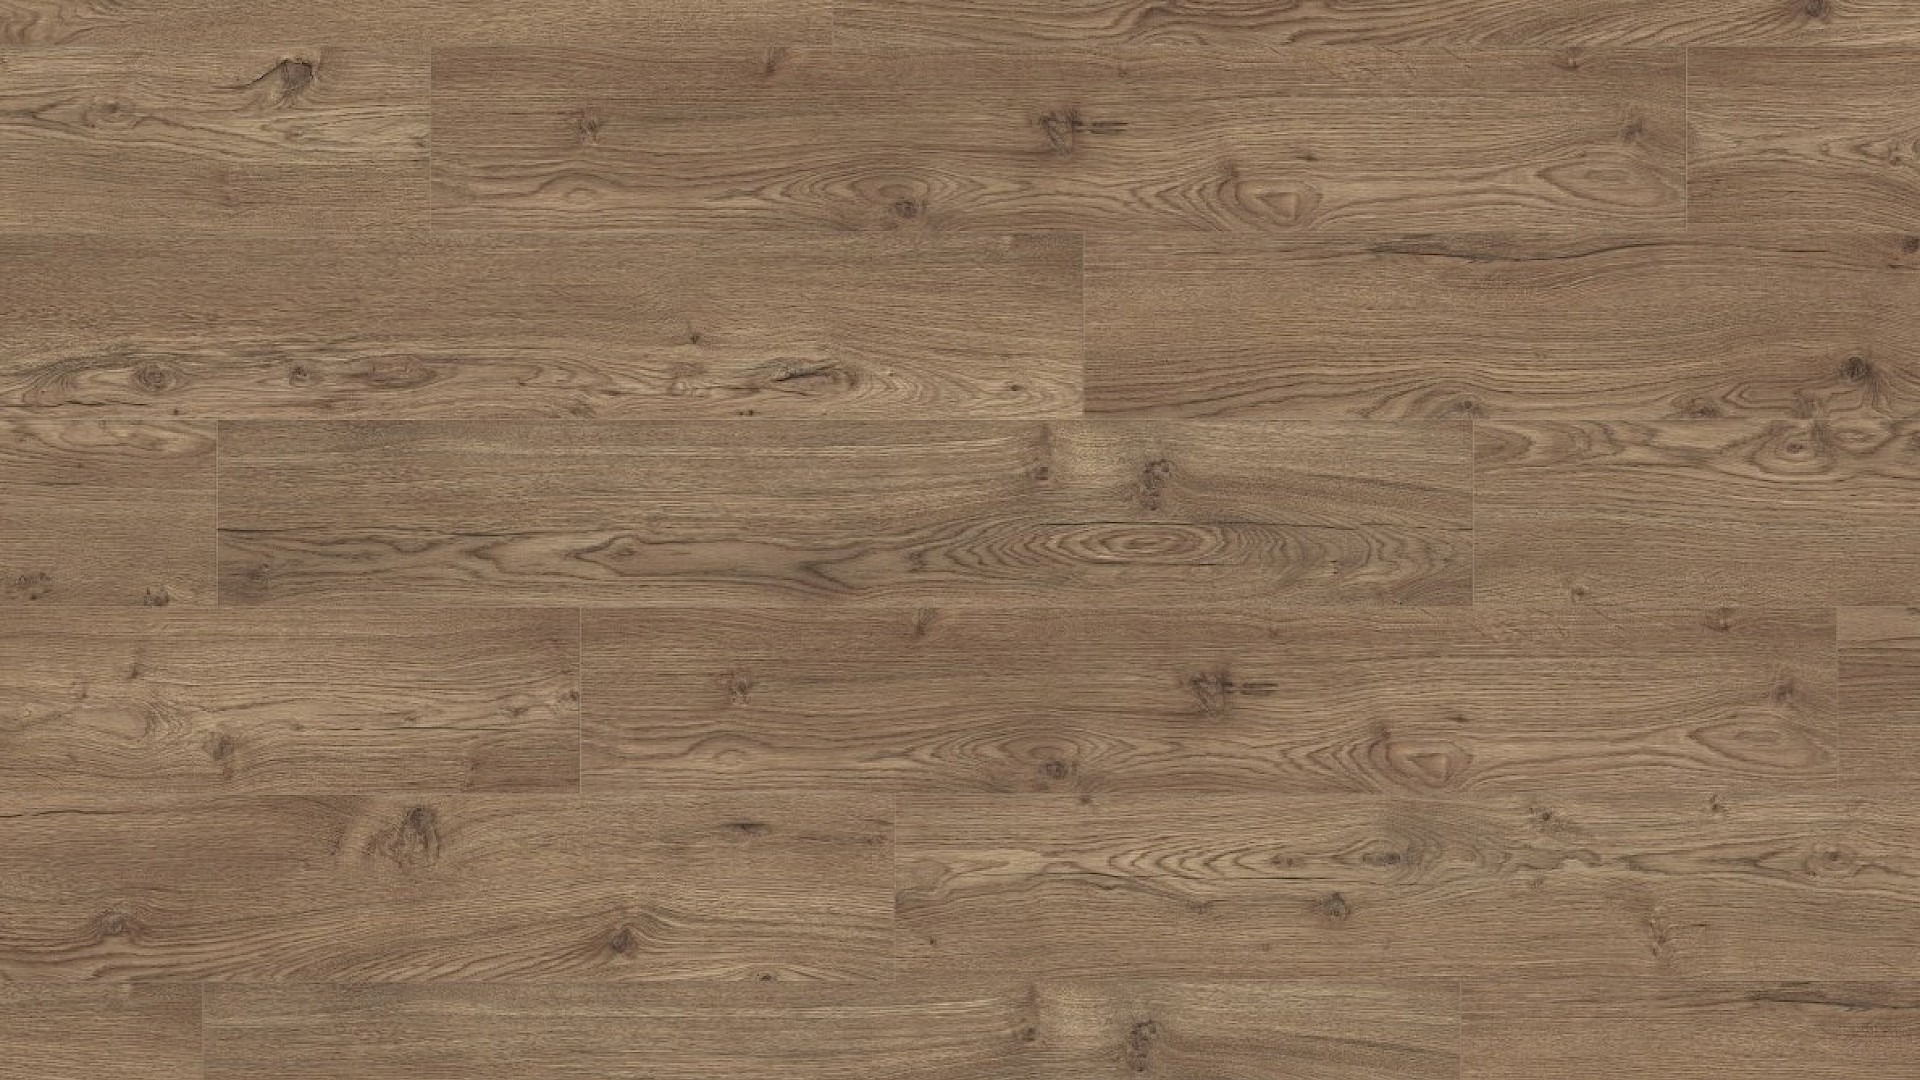 Egger Classic 7mm Olchon Oak Smoke 4V Laminate Flooring EPL146